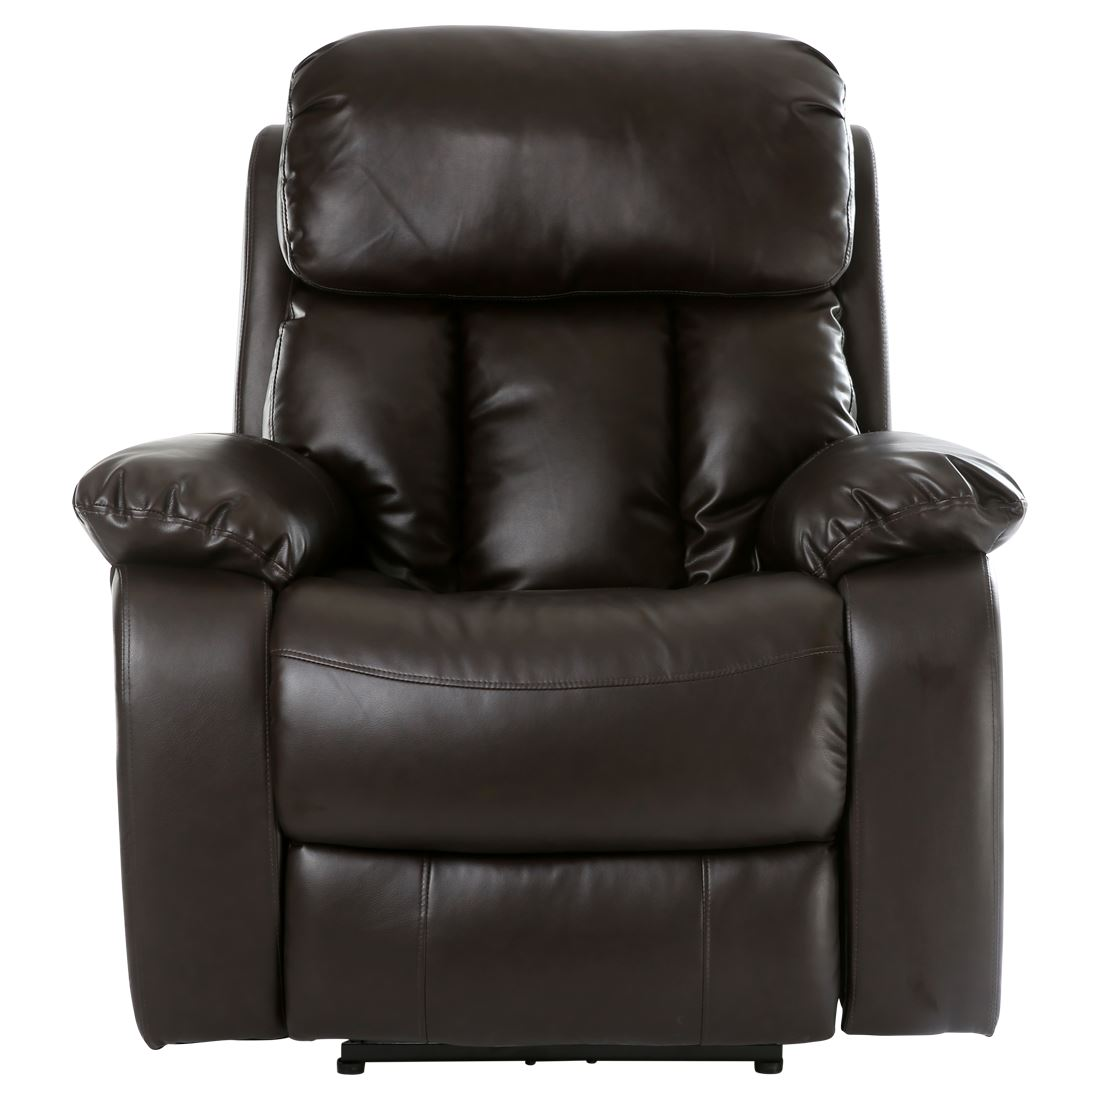 recliner gaming chair cover rentals in virginia beach chester electric heated leather massage